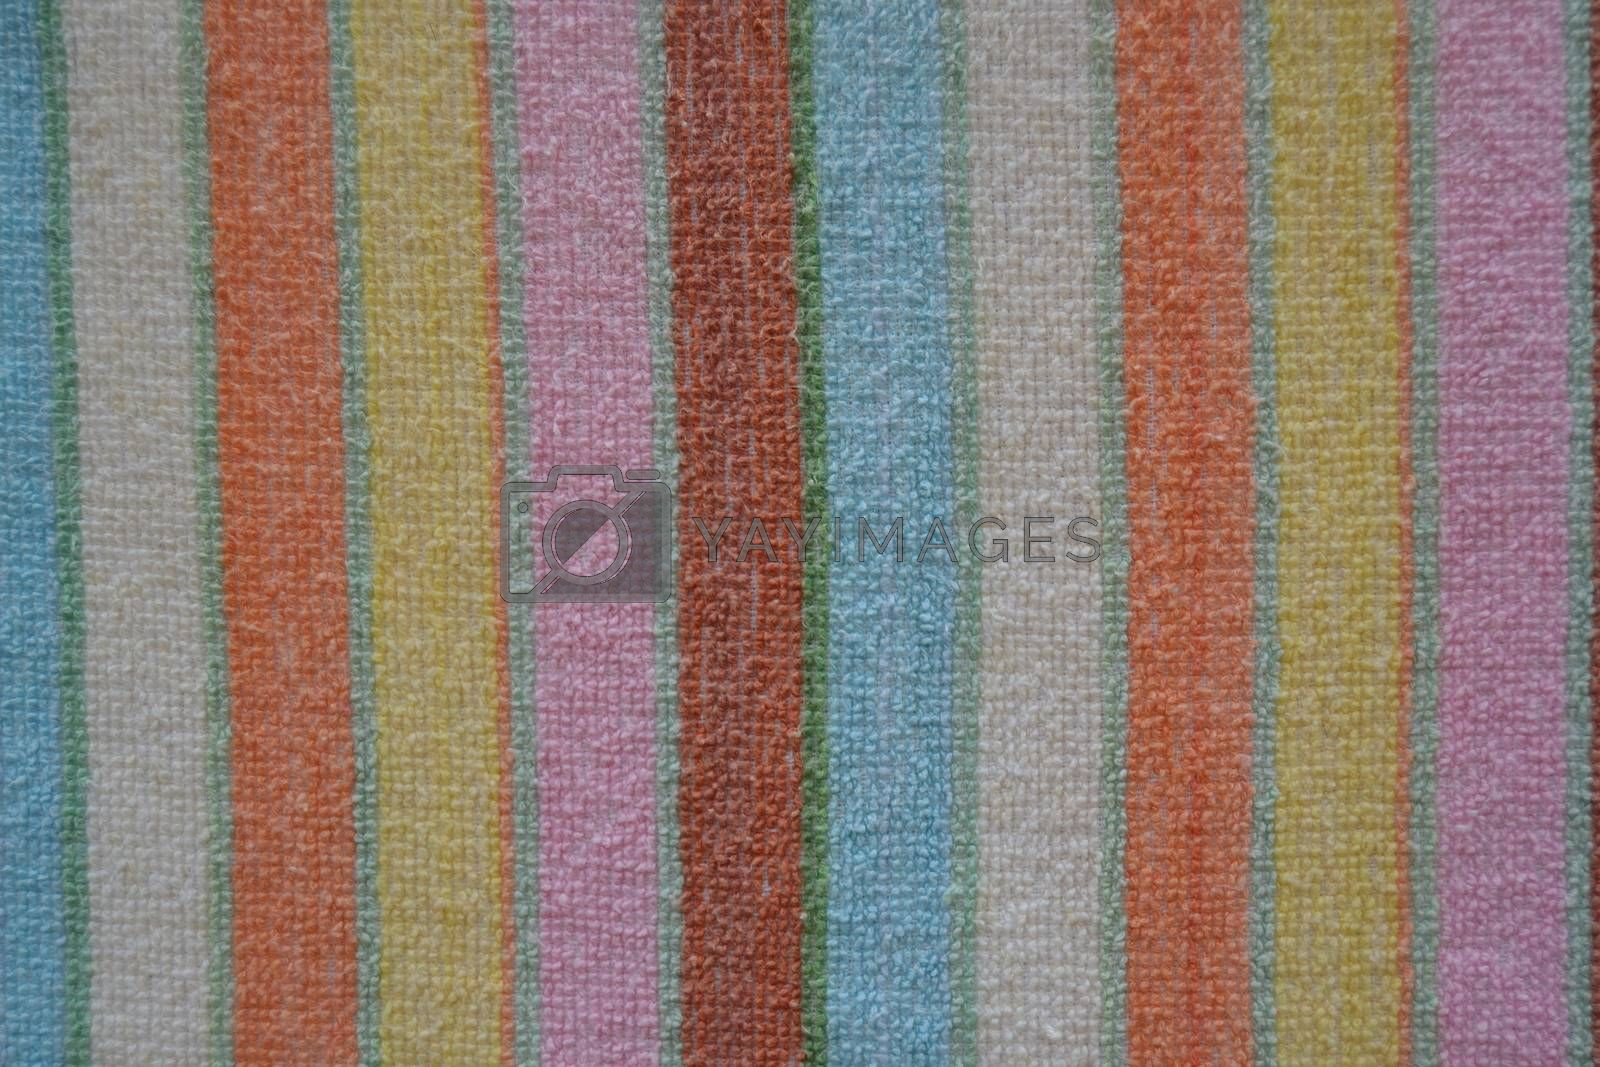 Fund of vertical stripes of several colors